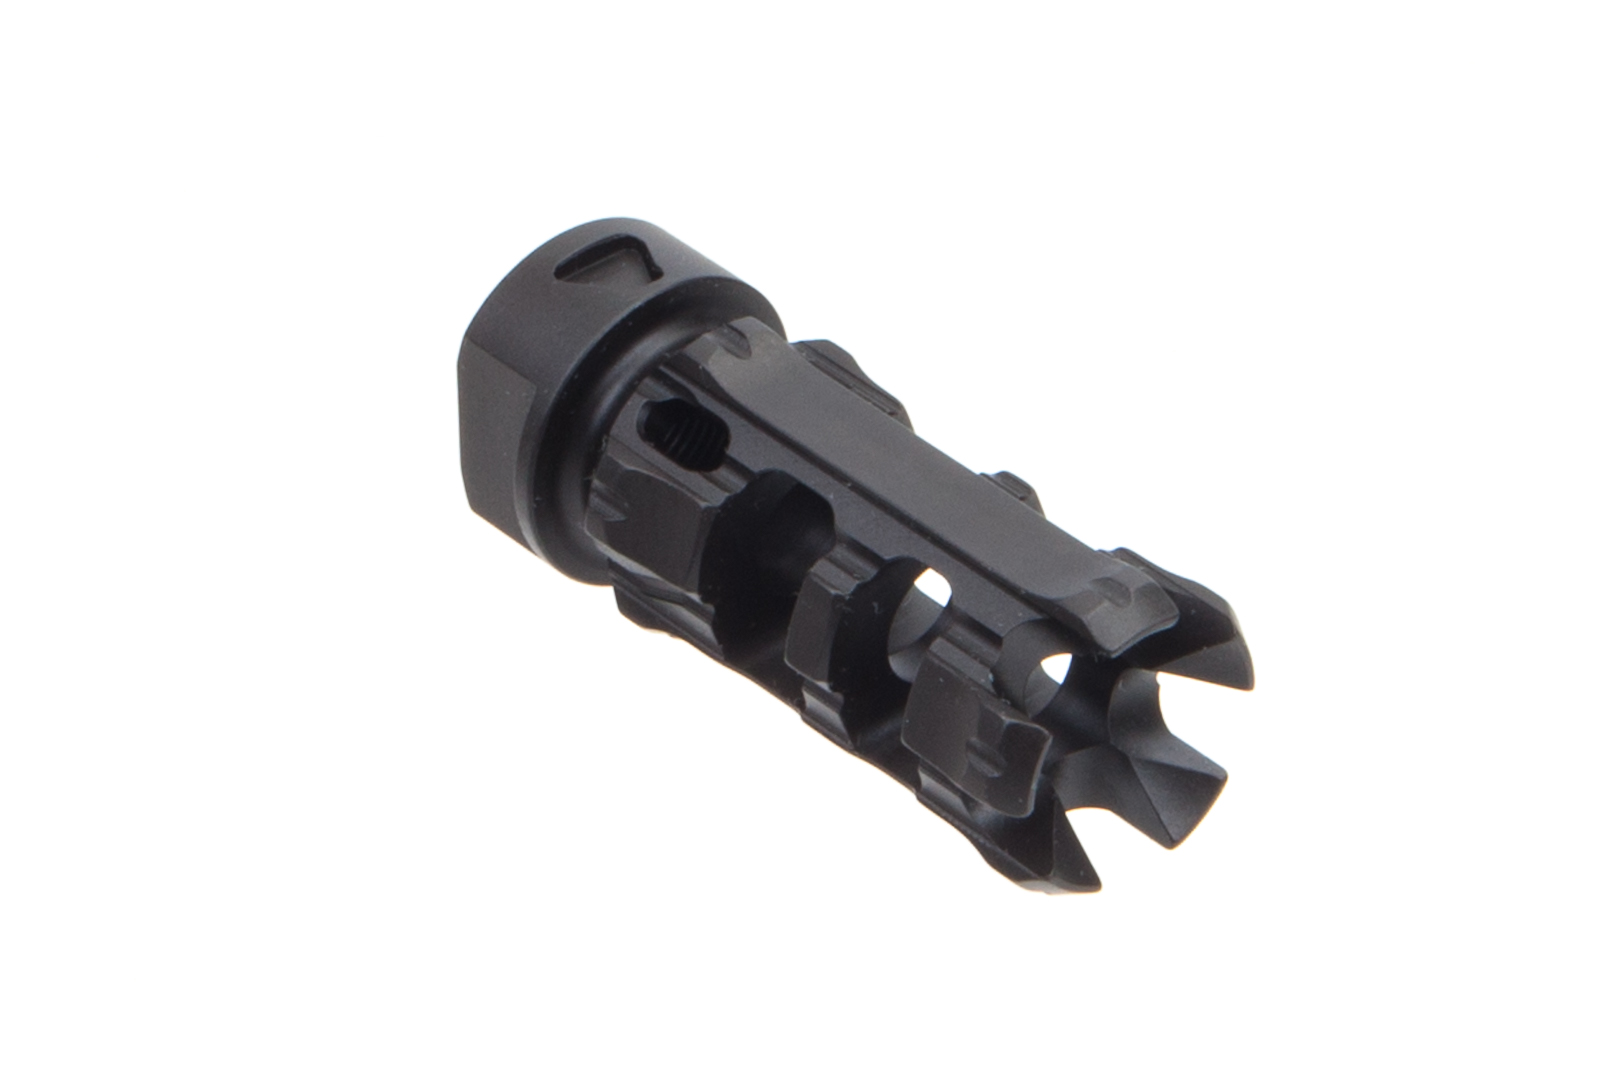 Rainier Arms Xtreme Tactical Compensator (XTC) 2.0 9MM Muzzle Device - 1/2x28